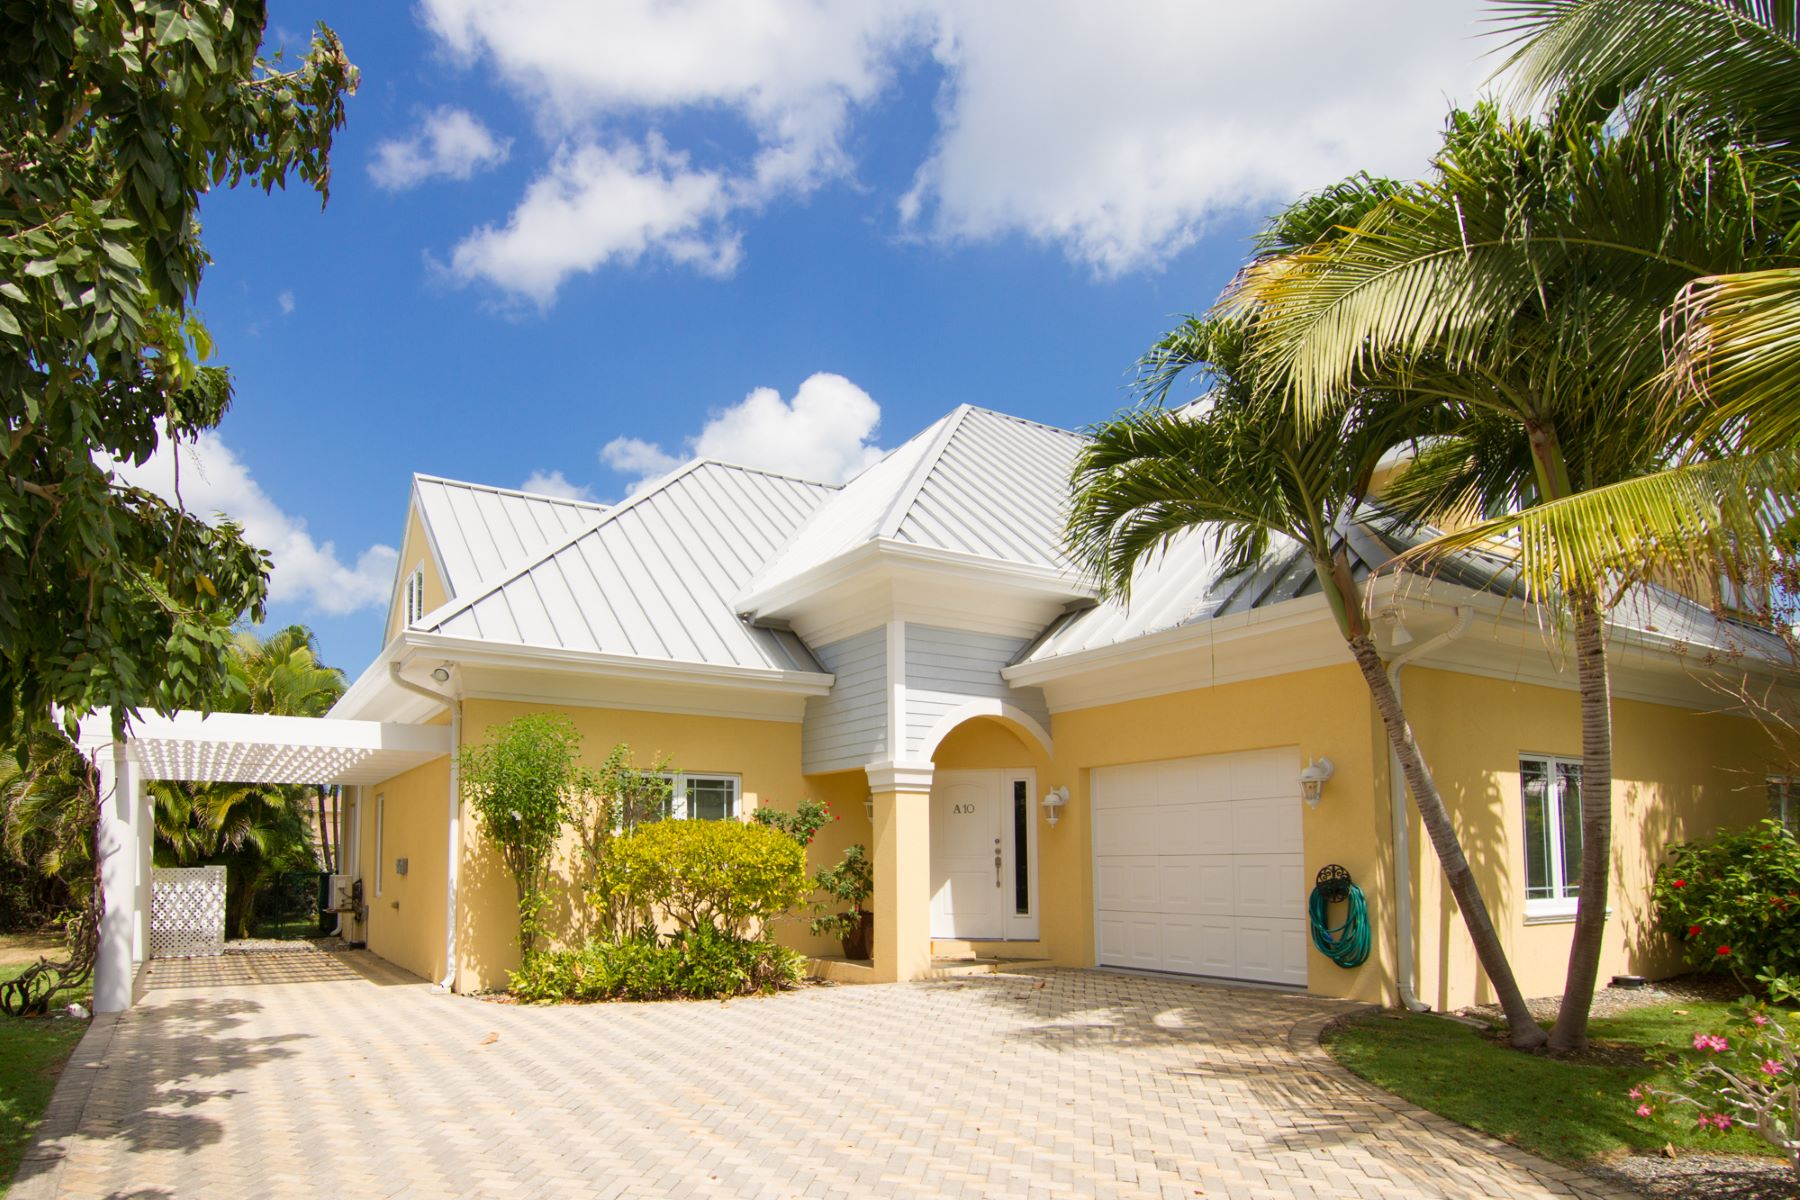 Single Family Home for Rent at Savannah Grand A10 Other Cayman Islands, Cayman Islands